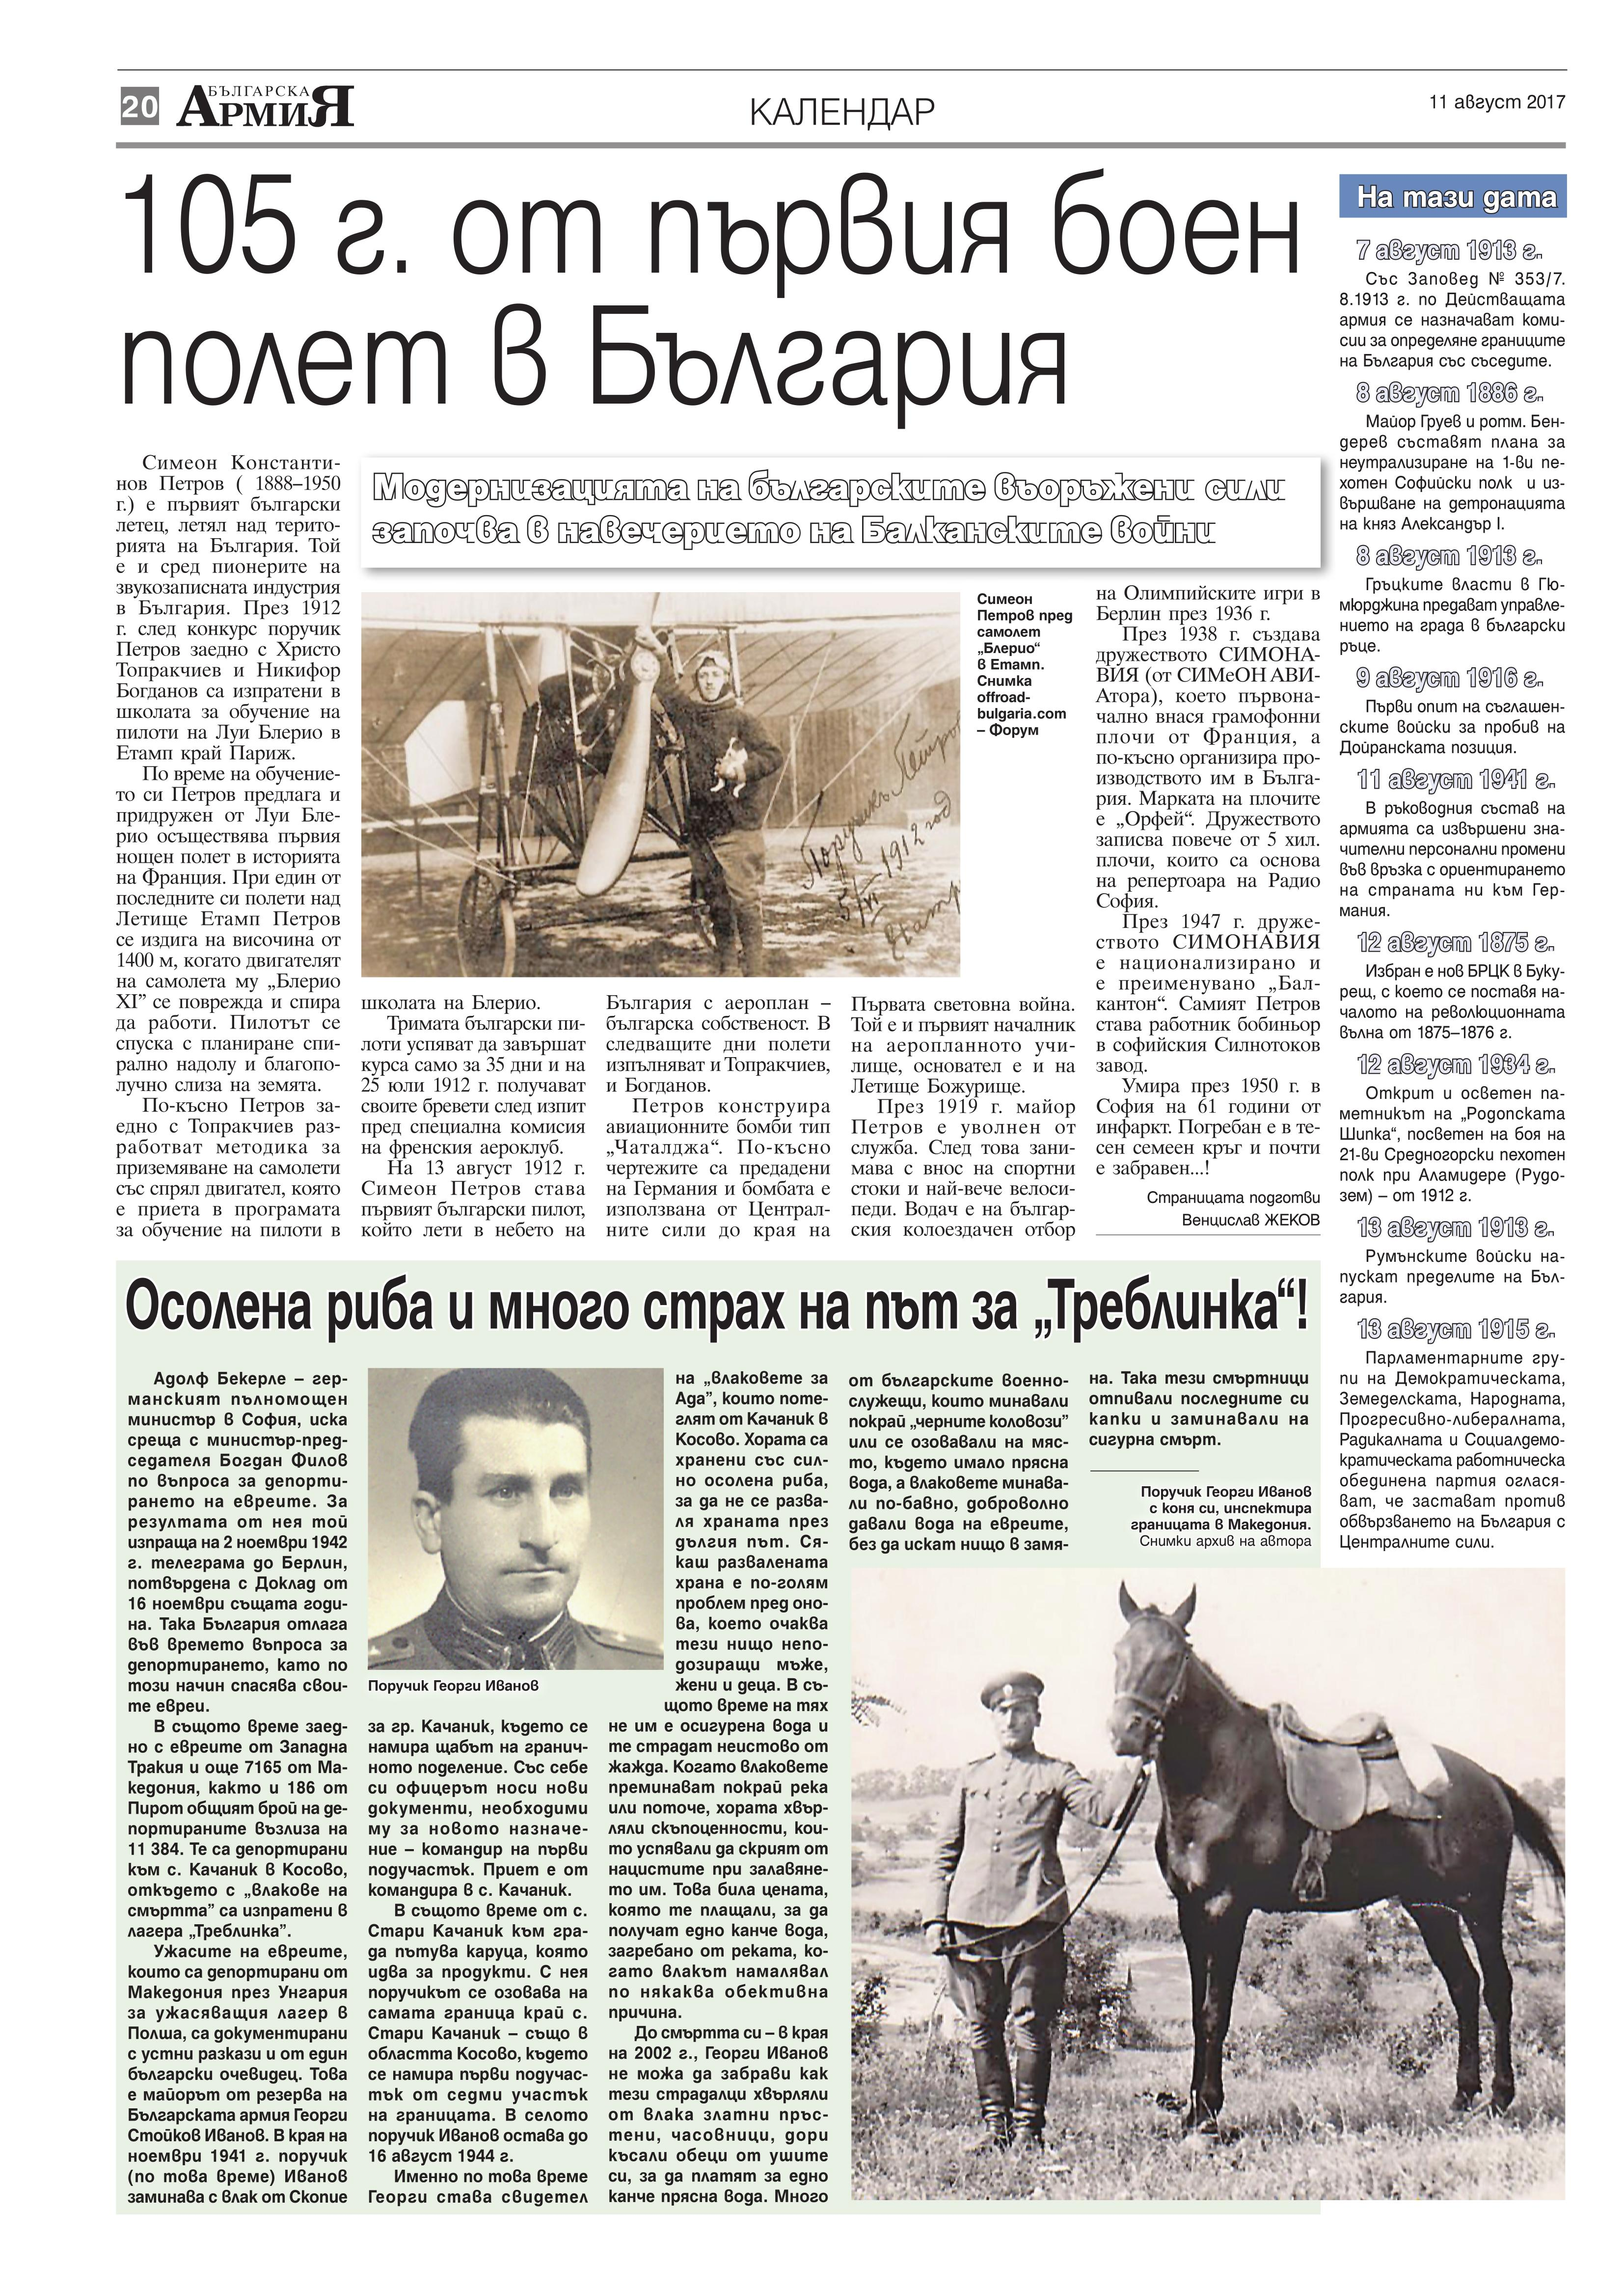 http://armymedia.bg/wp-content/uploads/2015/06/20.page1_-28.jpg